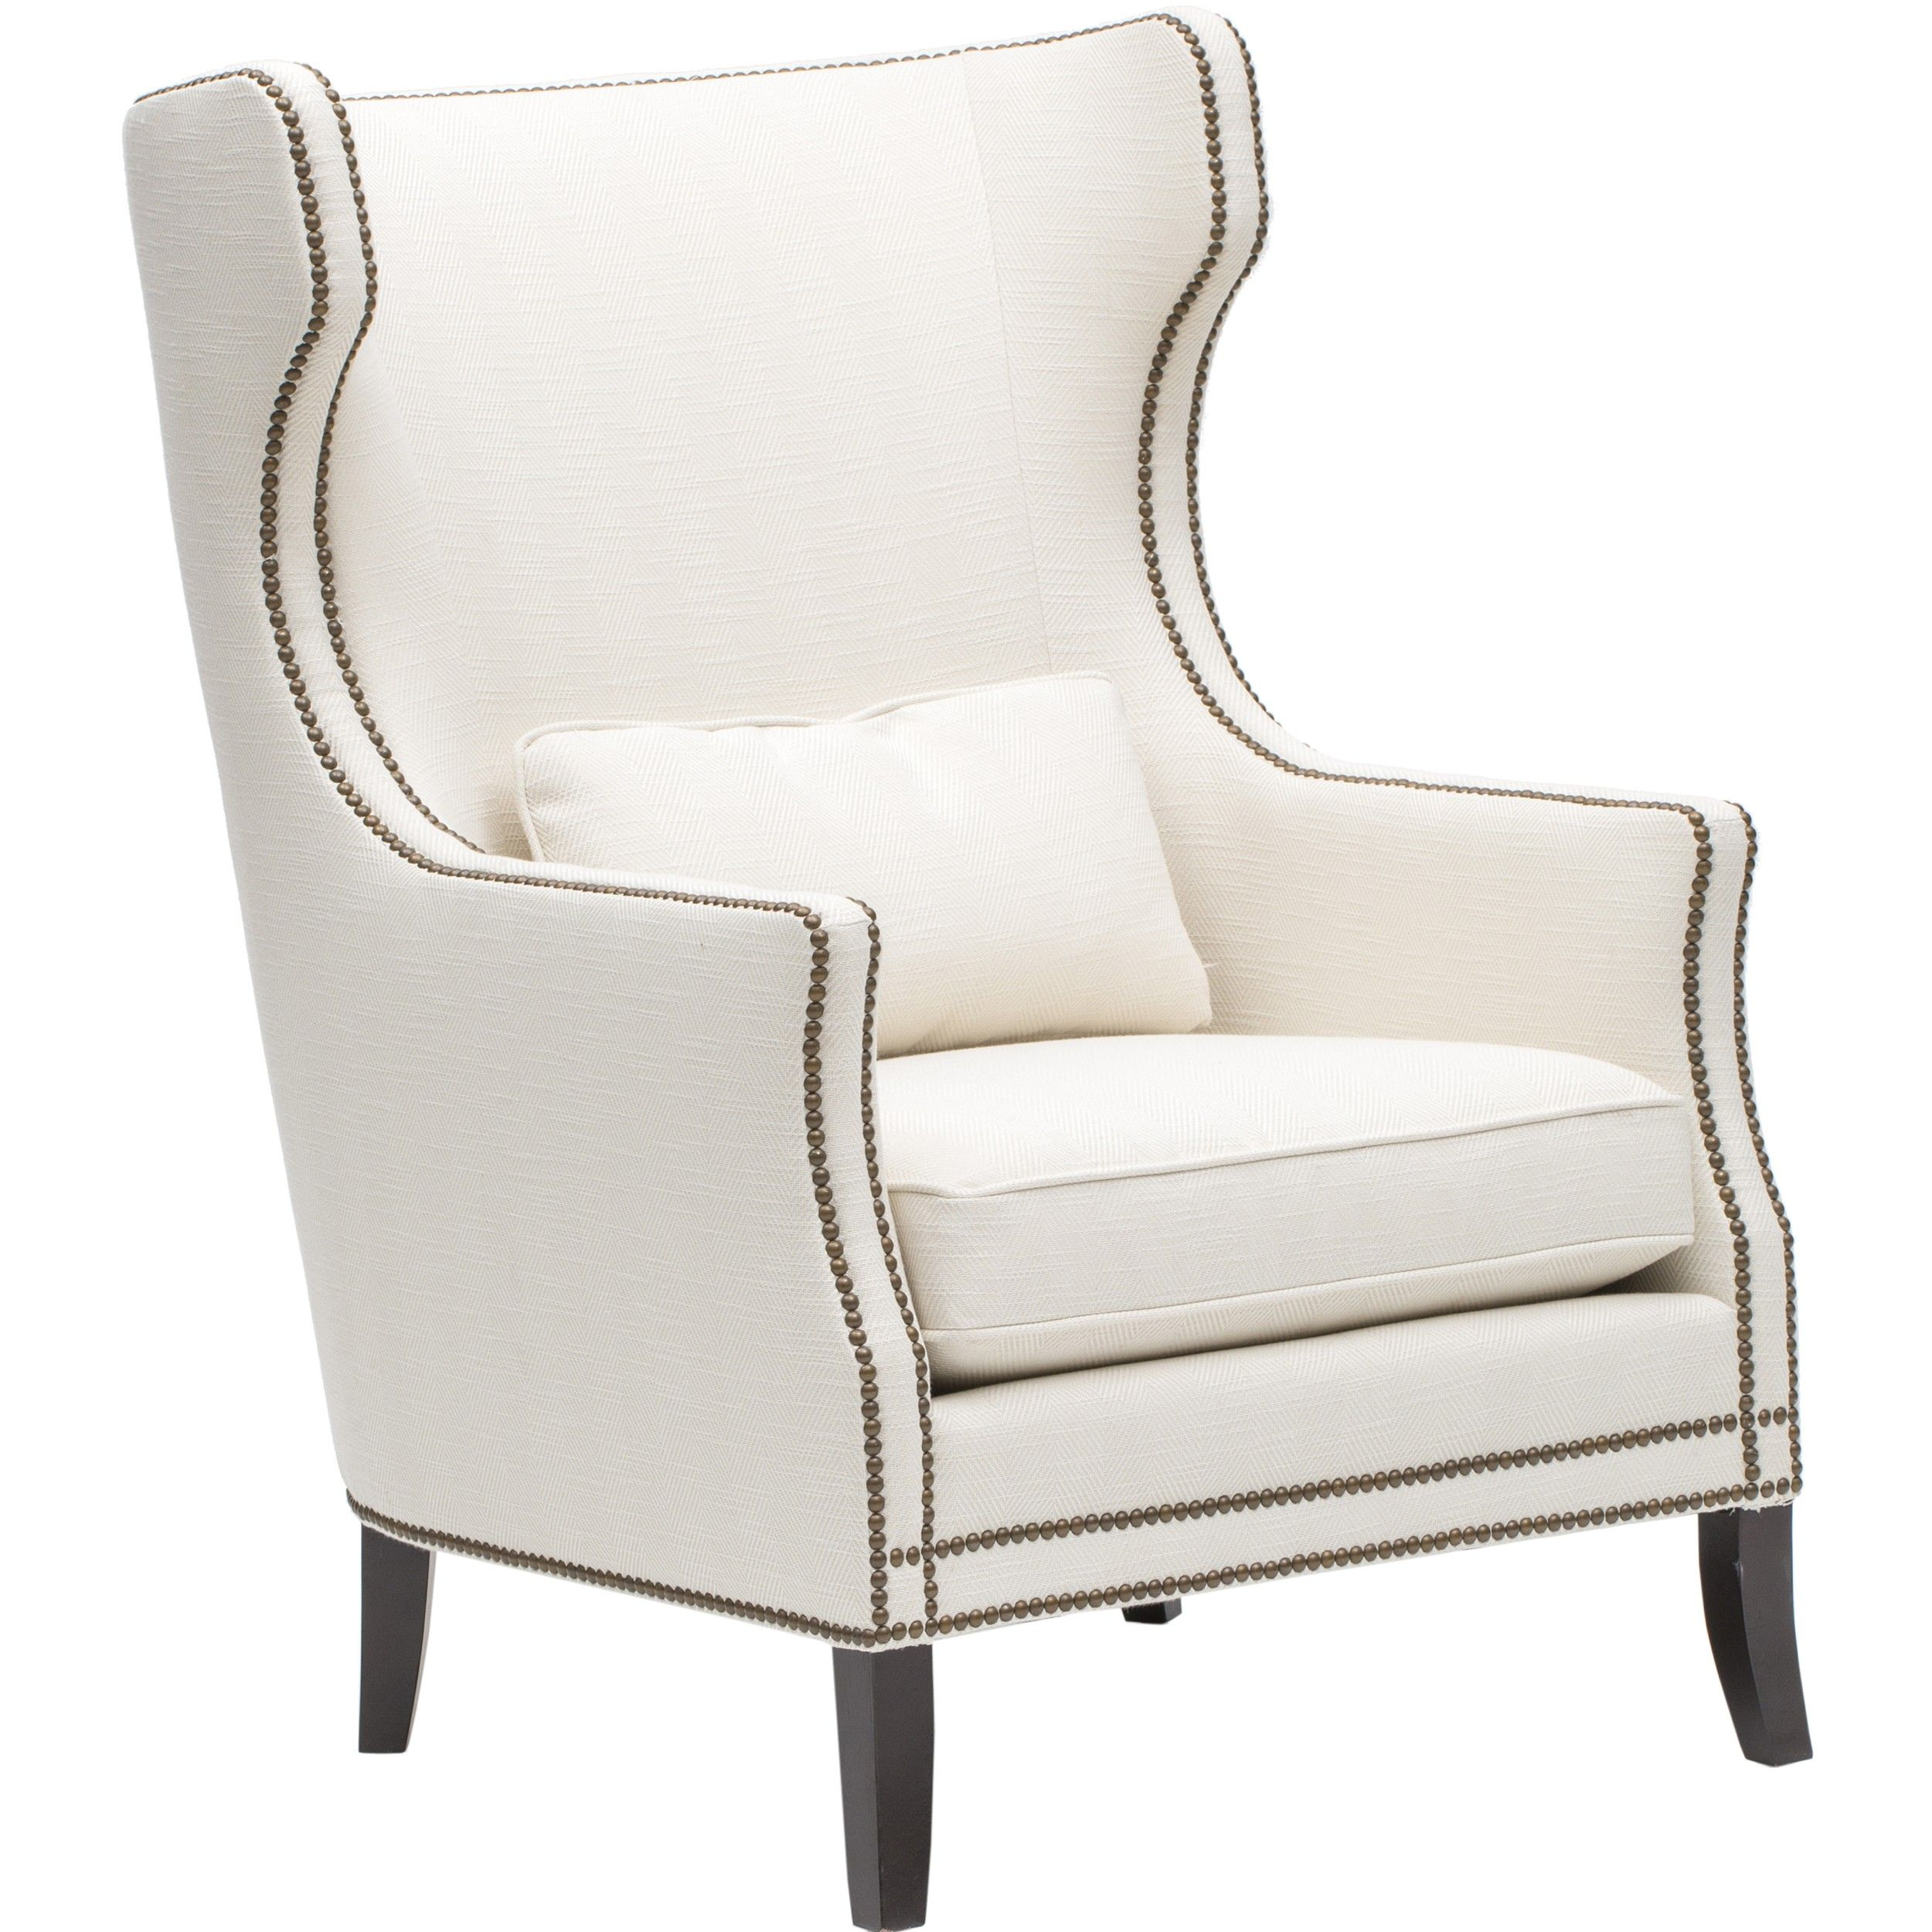 *actual Bedroom Chair* Kingston Chair, White $1,299.00